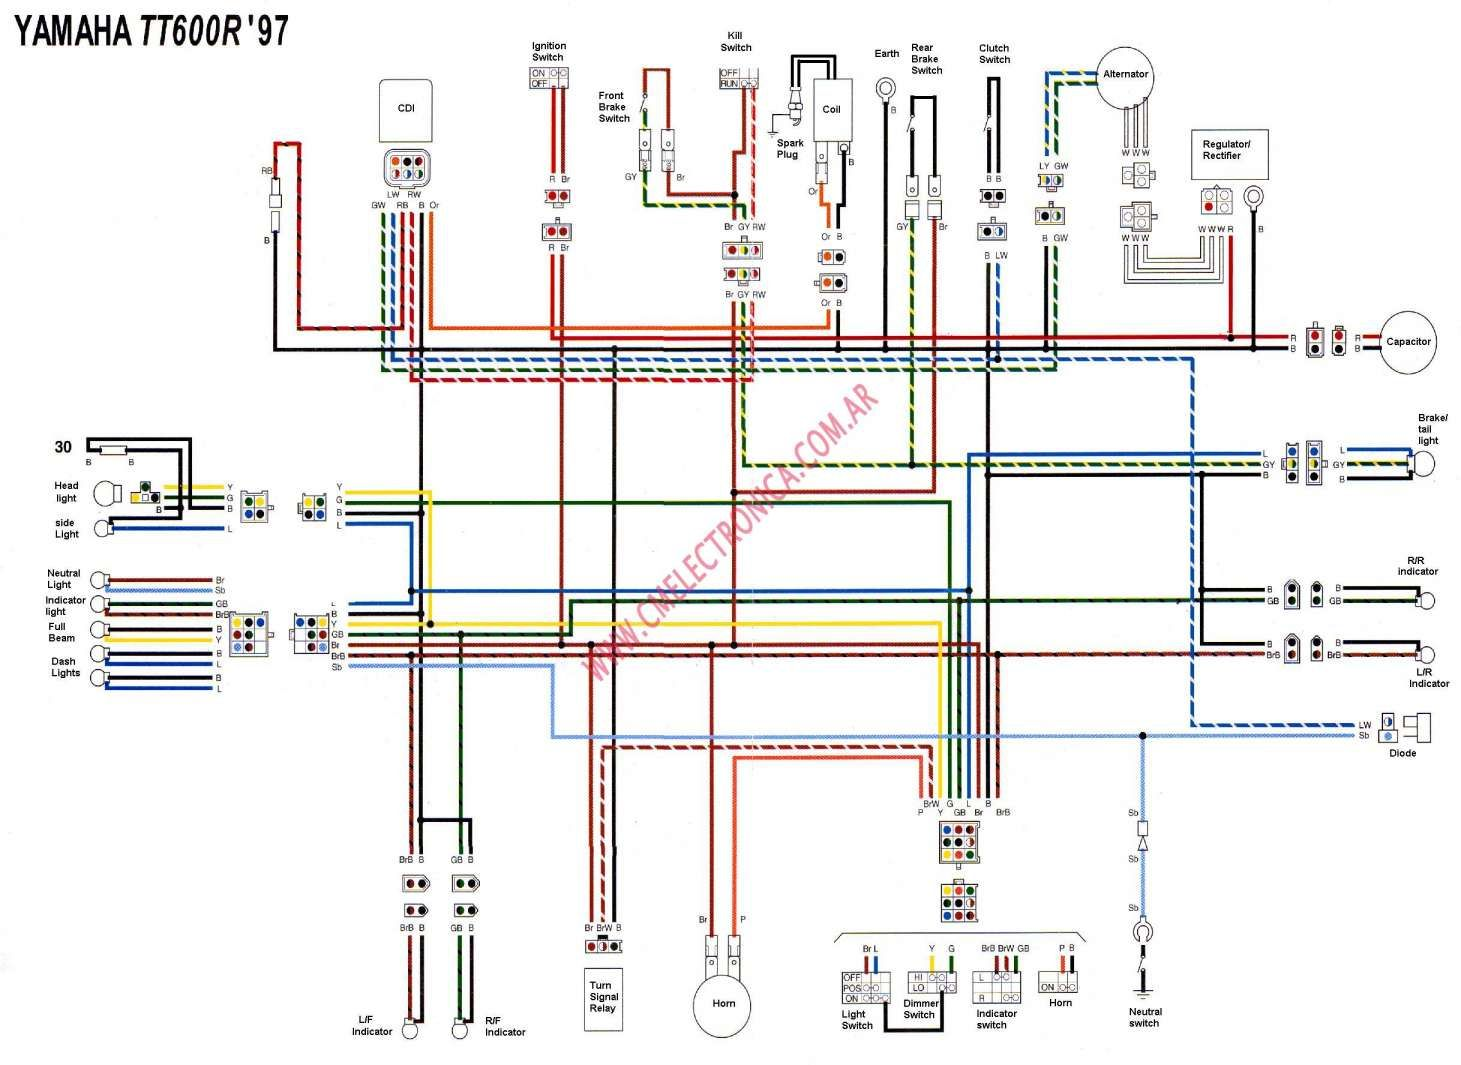 Cdi Motorcycle Wiring Diagram And Yamaha Yzrr Diagram Cdi Box Wiring Schematics Online Motorcycle Wiring Electrical Diagram Circuit Diagram